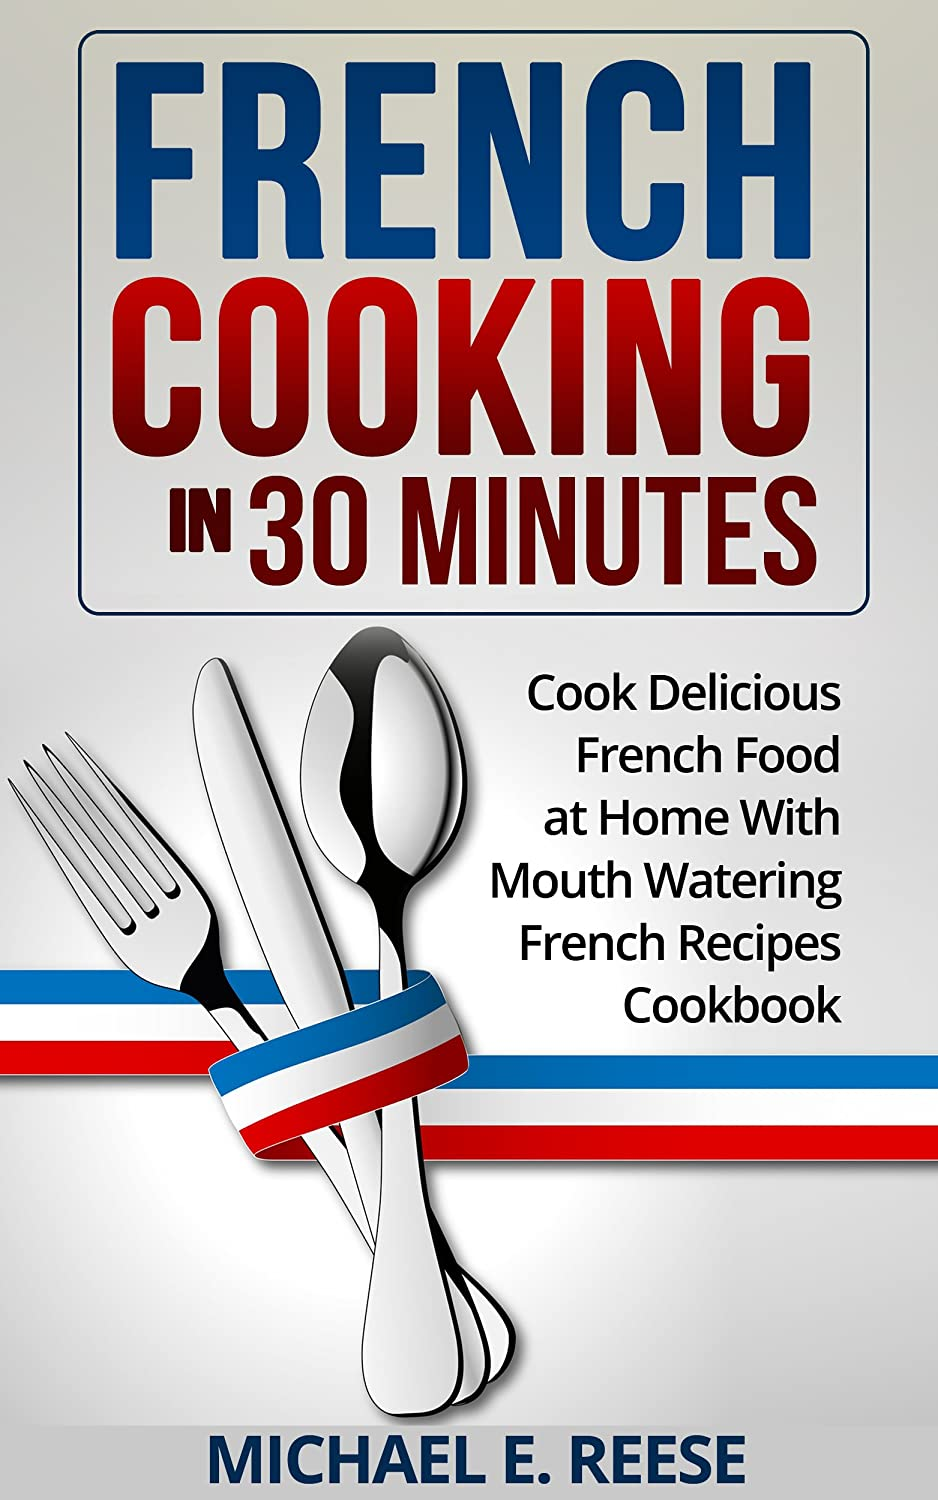 French-cooking